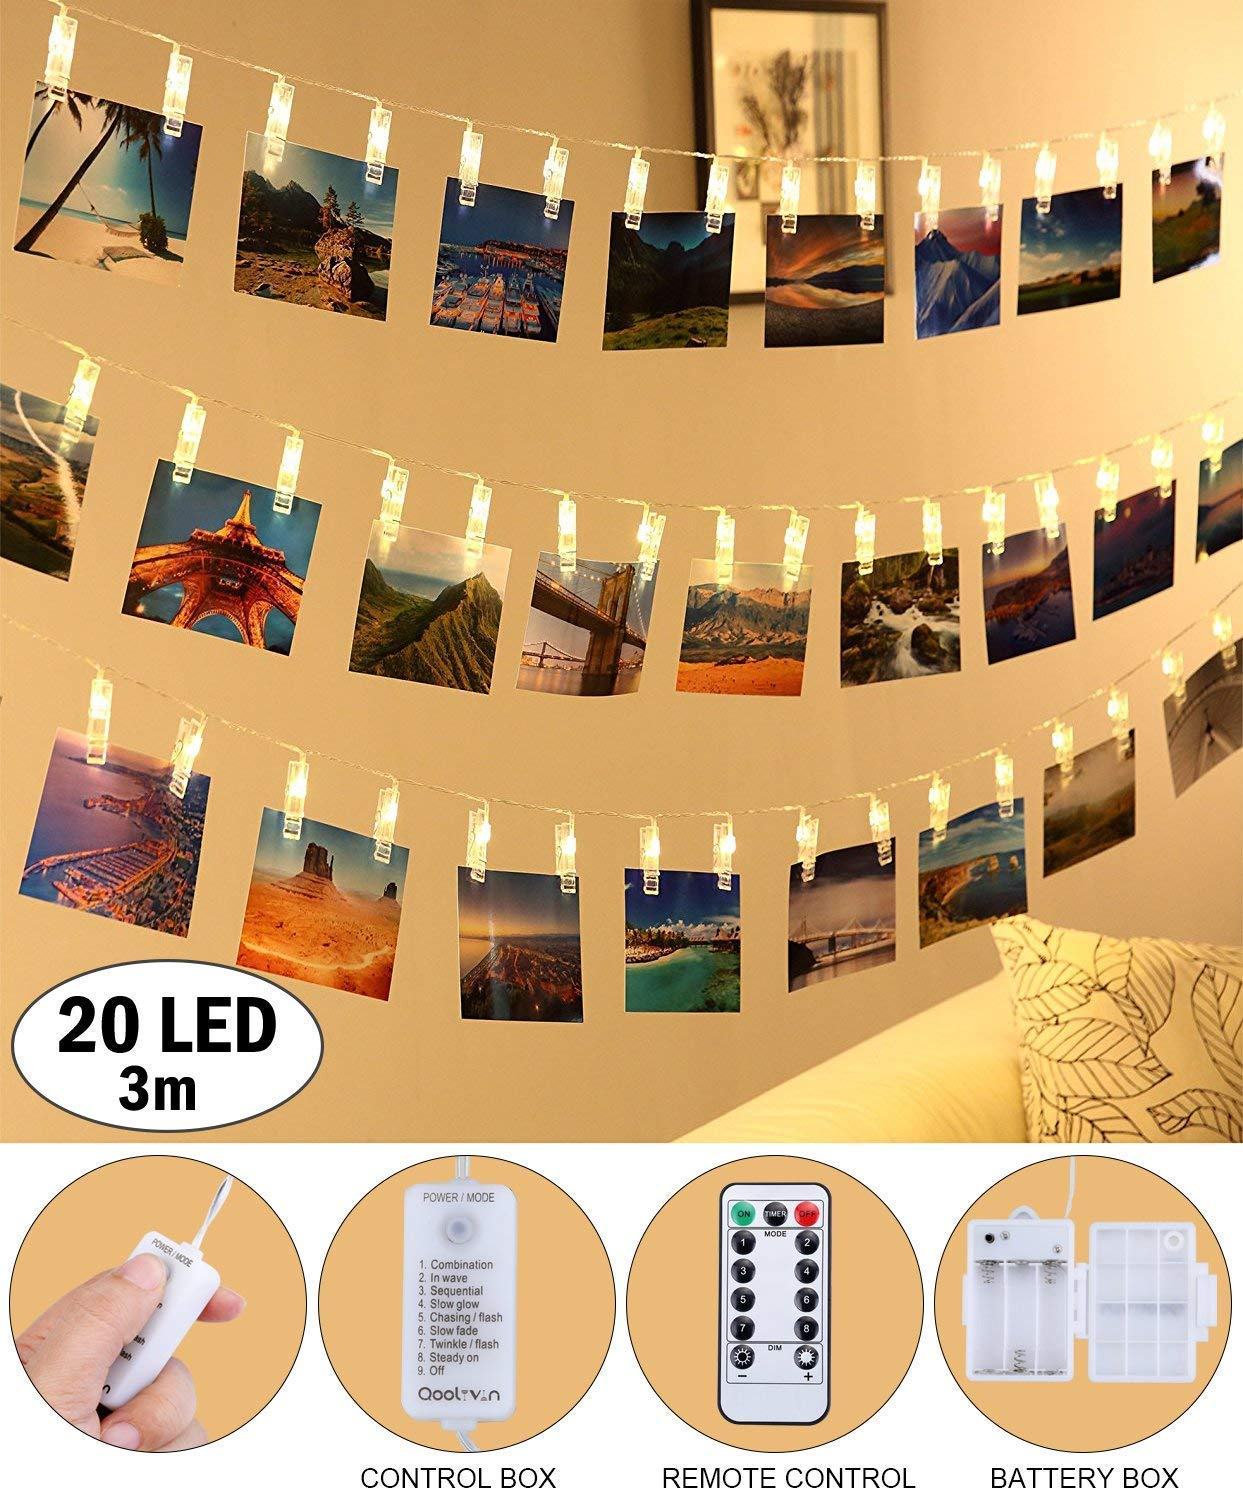 LED Photo Clip String Lights - Qoolivin 3M 20 Clips USB Plug Warm White LEDs Battery Operated Fairy String Lights Bedroom Home Decoration for Hanging Photos, Cards and Artwork by Qoolivin